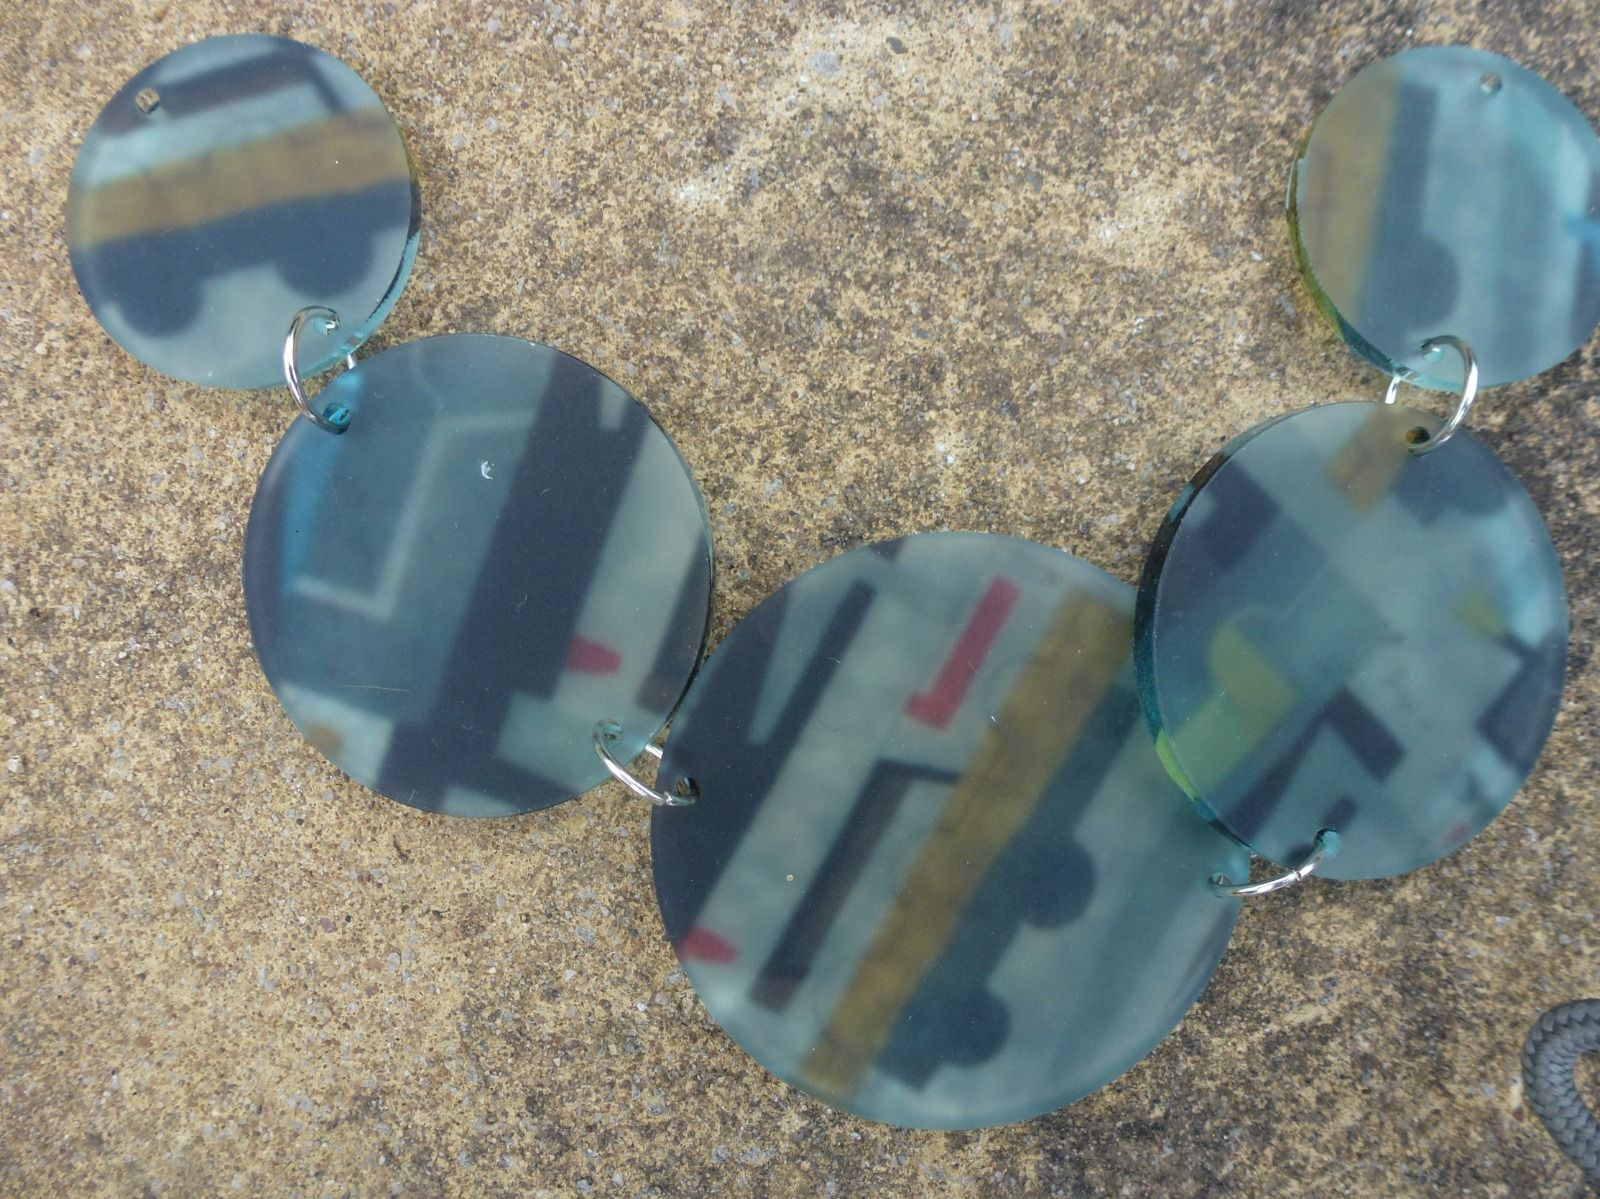 acrylic disc necklace with printed 1950's design